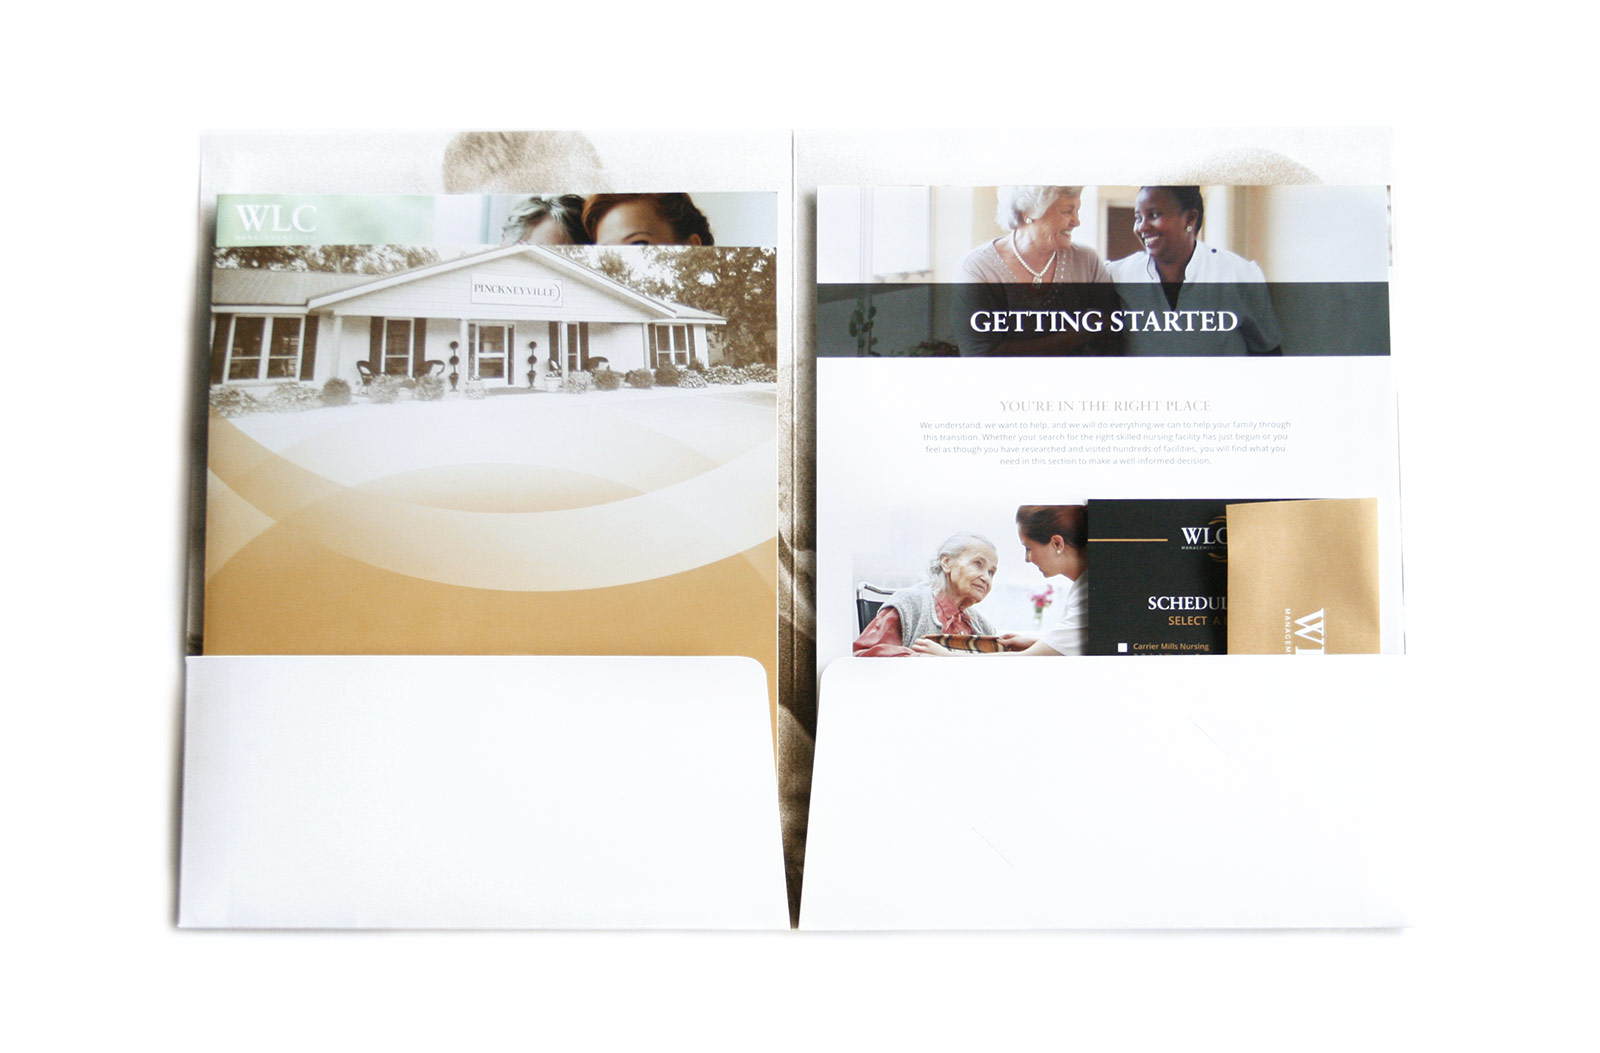 WLC Management Firm Promotional Folder Design View 2